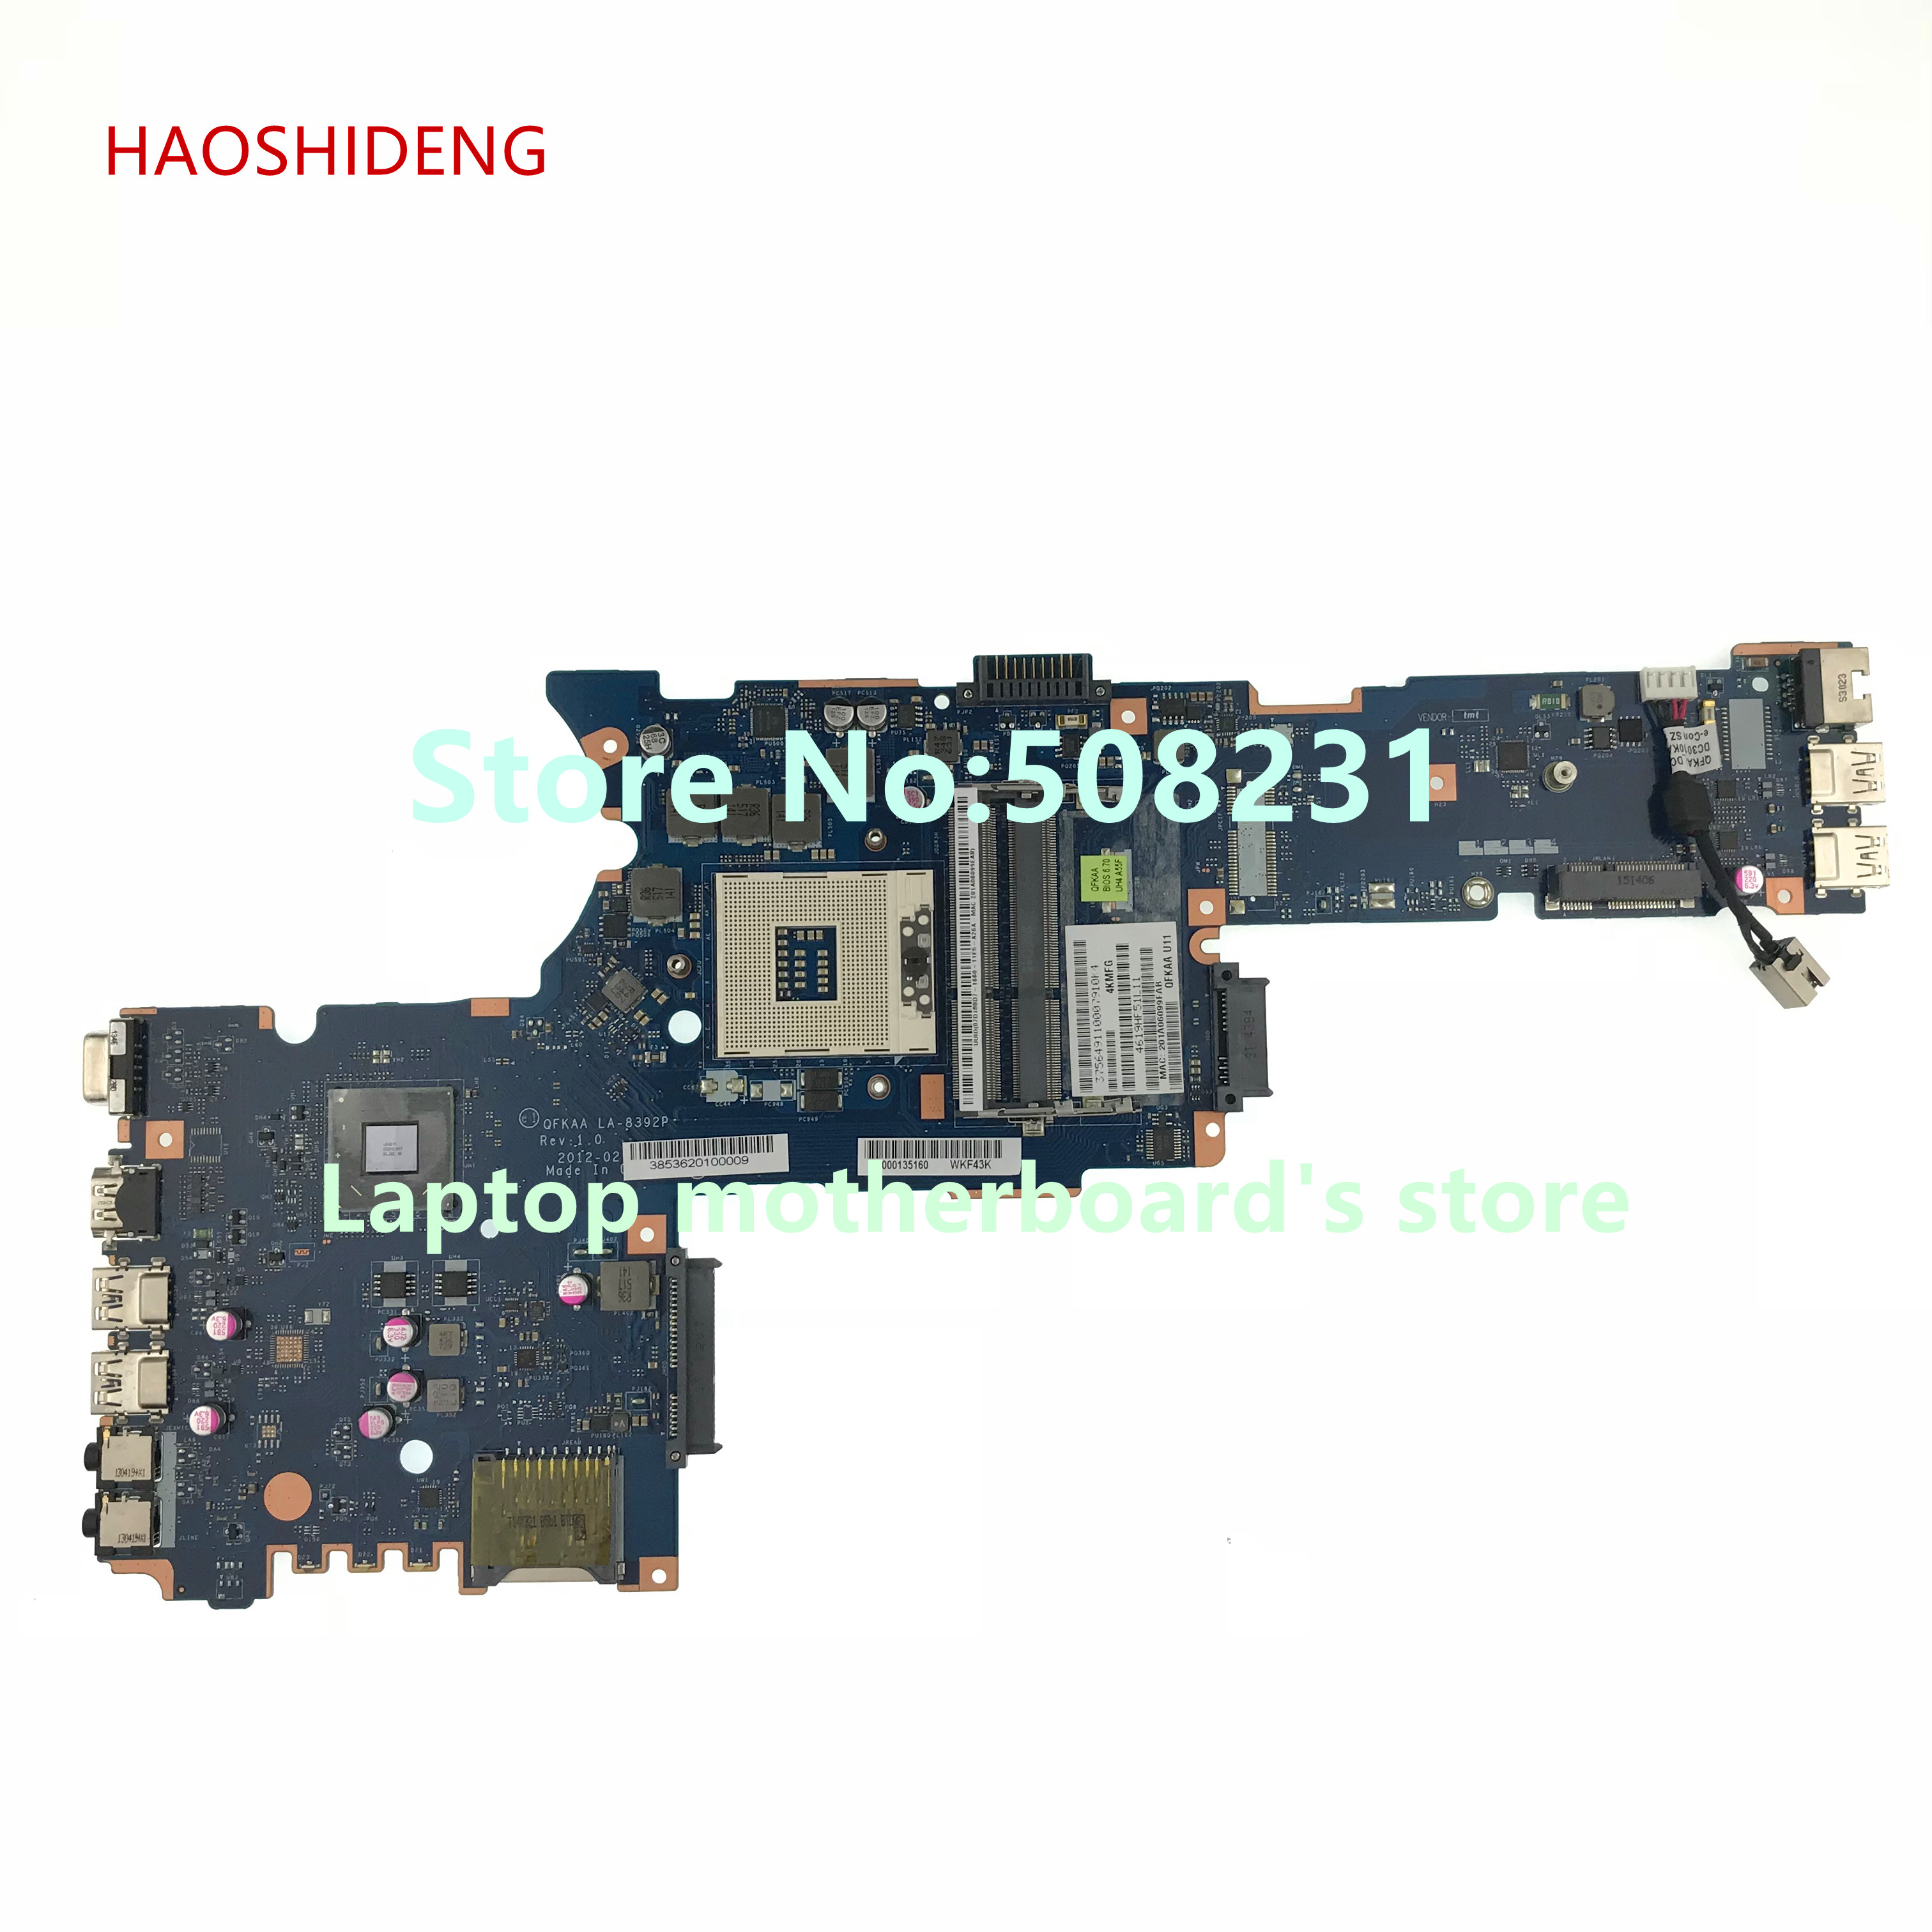 HAOSHIDENG K000135160 QFKAA LA-8392P Mainrboard For Toshiba satellite P850 P855 laptop motherboard fully Tested цена и фото